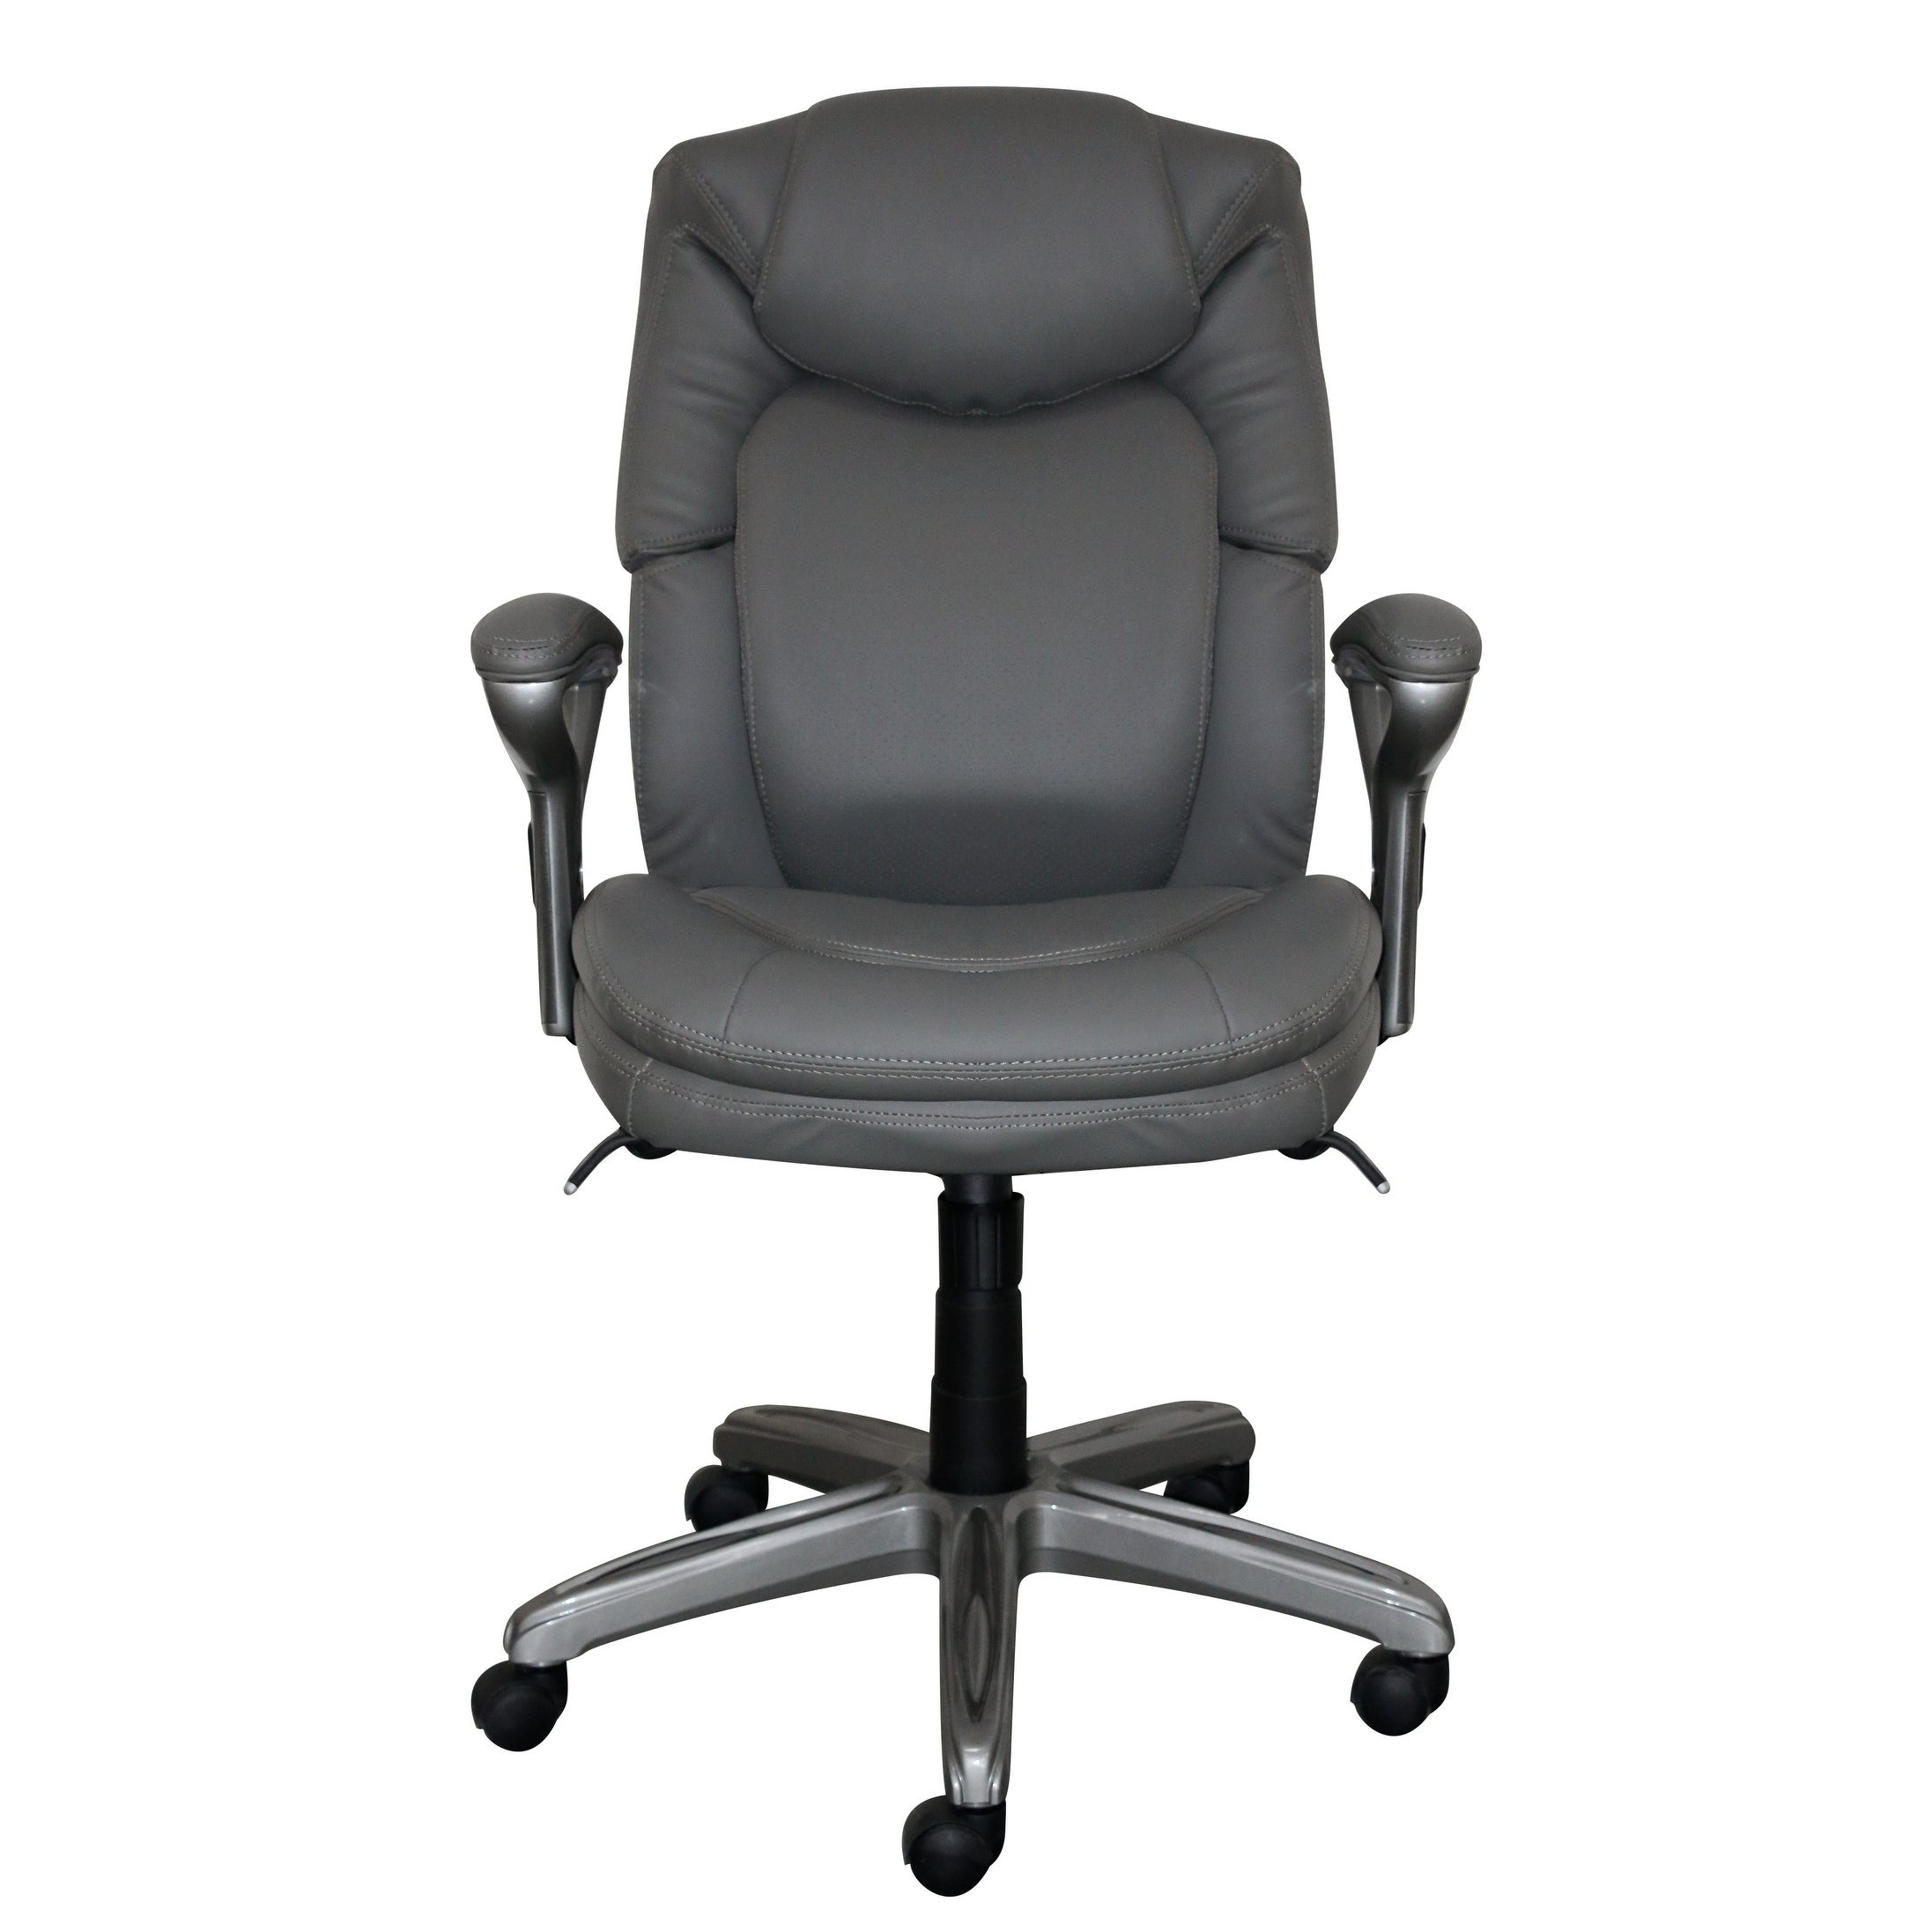 Shop Serta Wellness By Design Mid Back Leather Office Chair